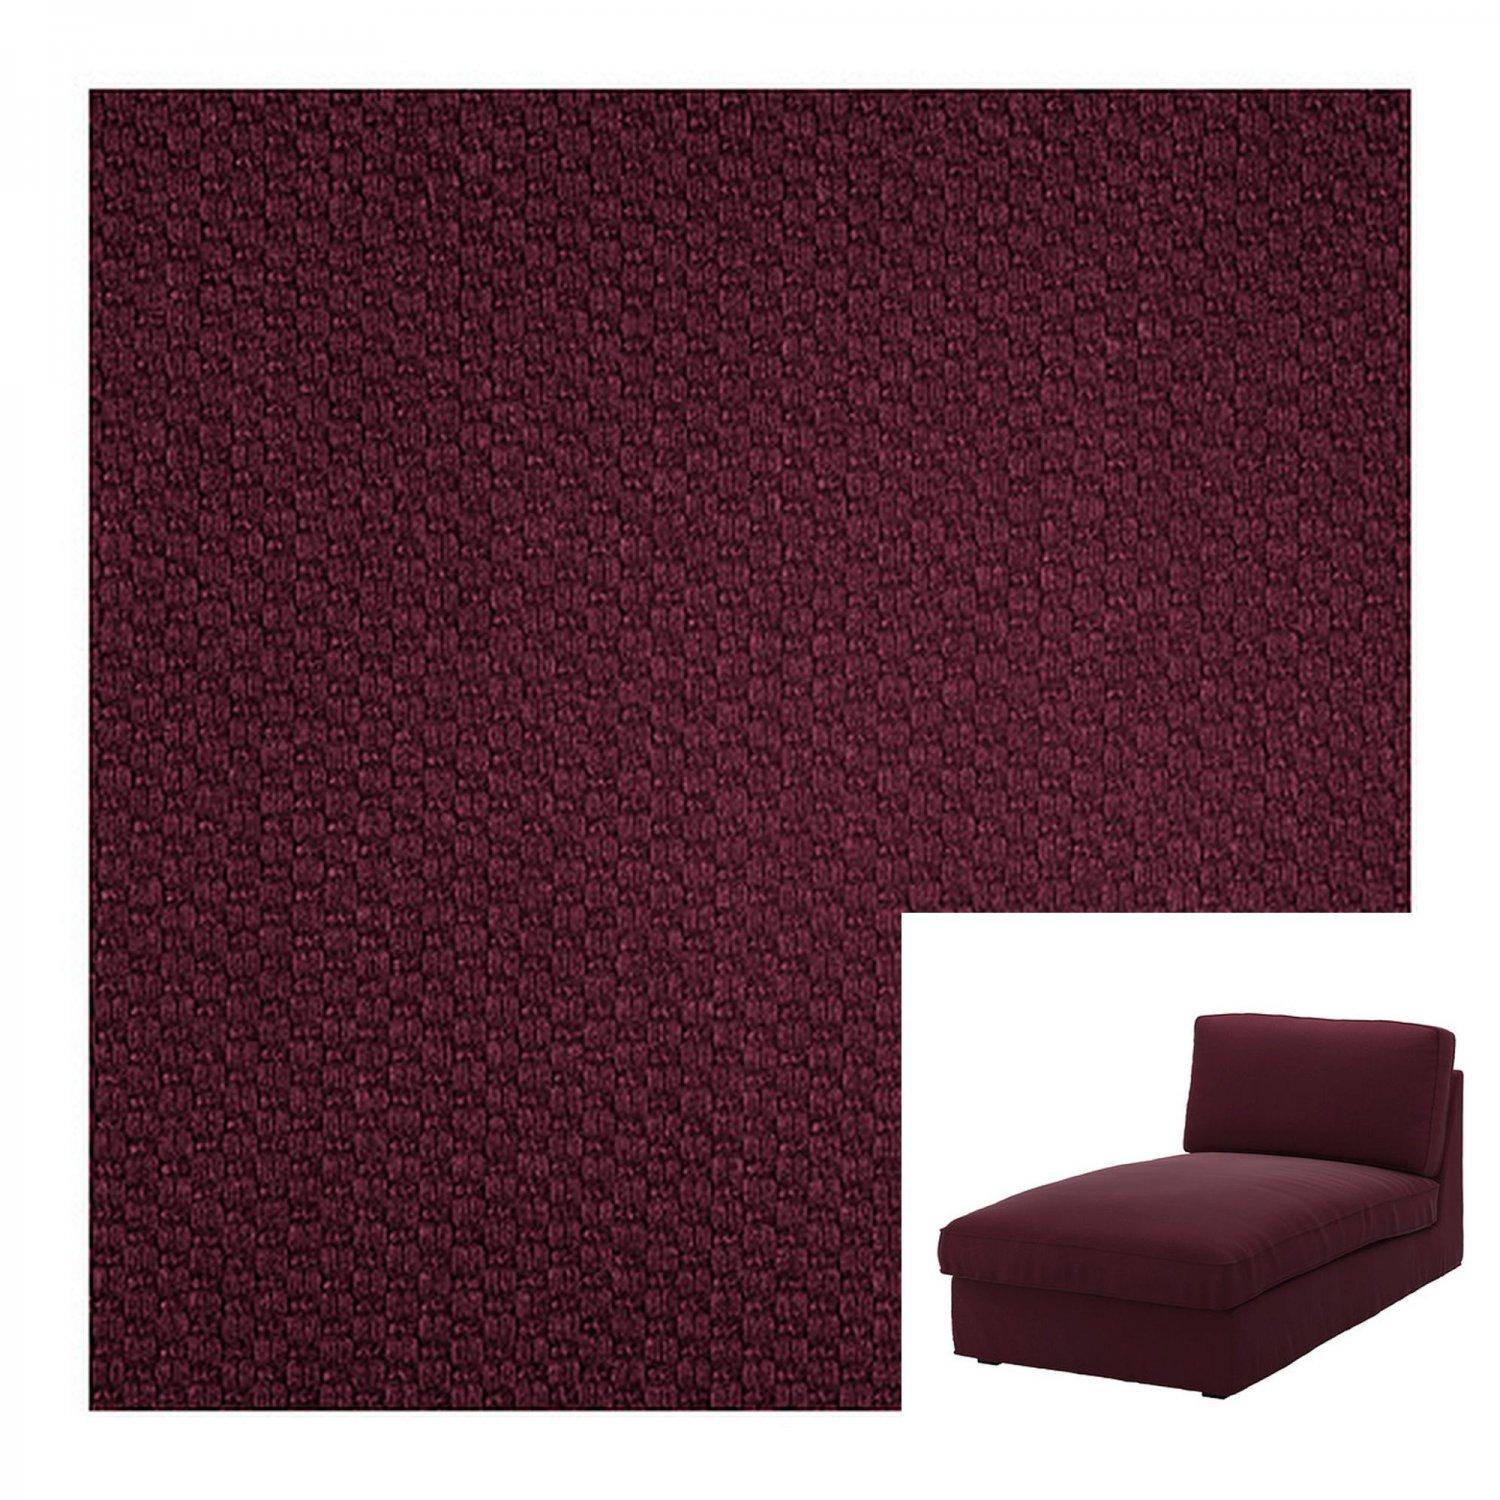 IKEA Kivik Chaise Longue SLIPCOVER Lounge Cover DANSBO Red-Lilac Red Lilac Purple Wine Burgundy